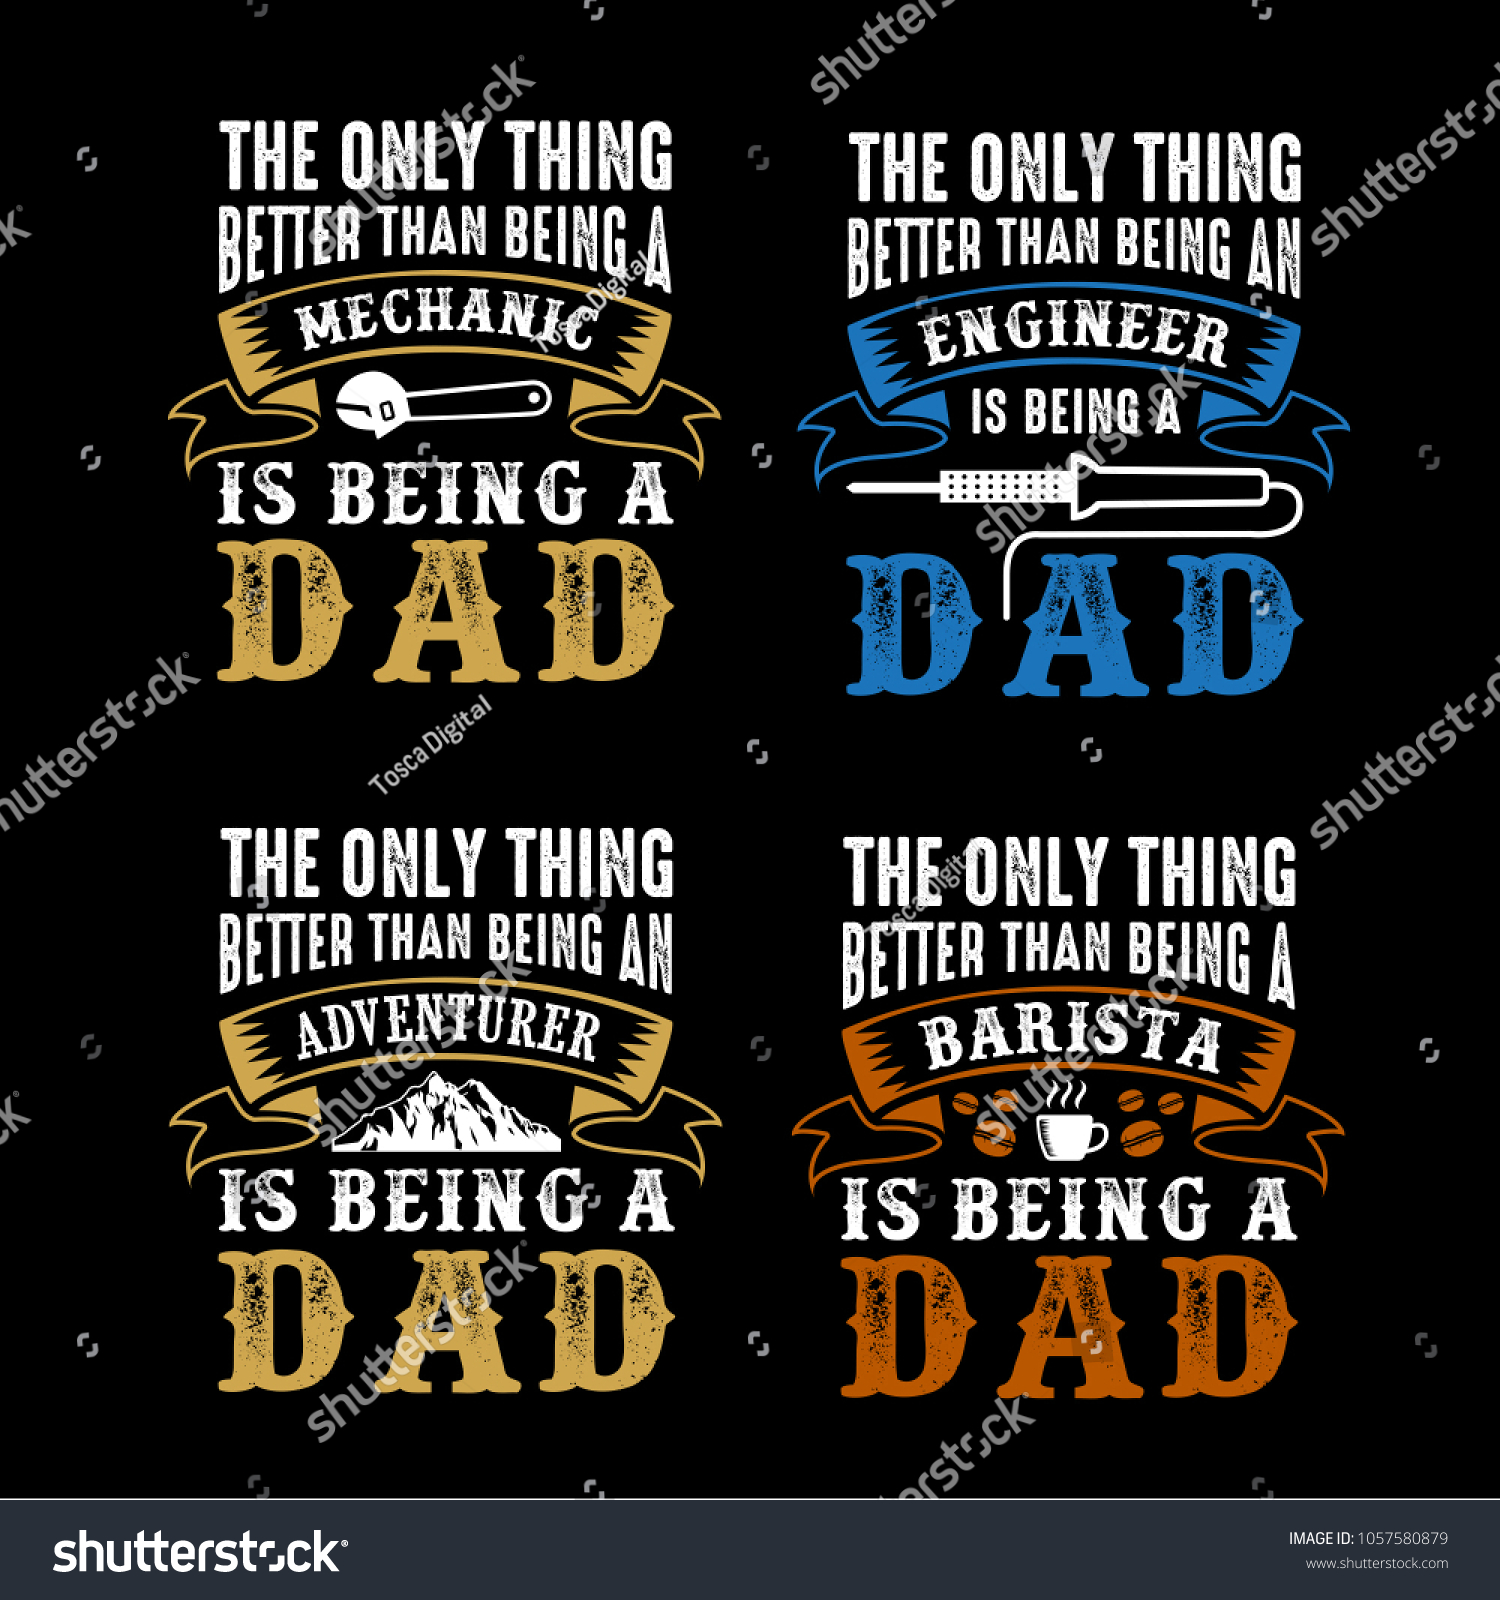 7c484e83 Father's Day Saying & quotes. Cooler Dad. 100% vector ready for print, Best  for t-shirt, sticker, poster/frame, mug, Pillow, phone & laptop cases. -  Vector